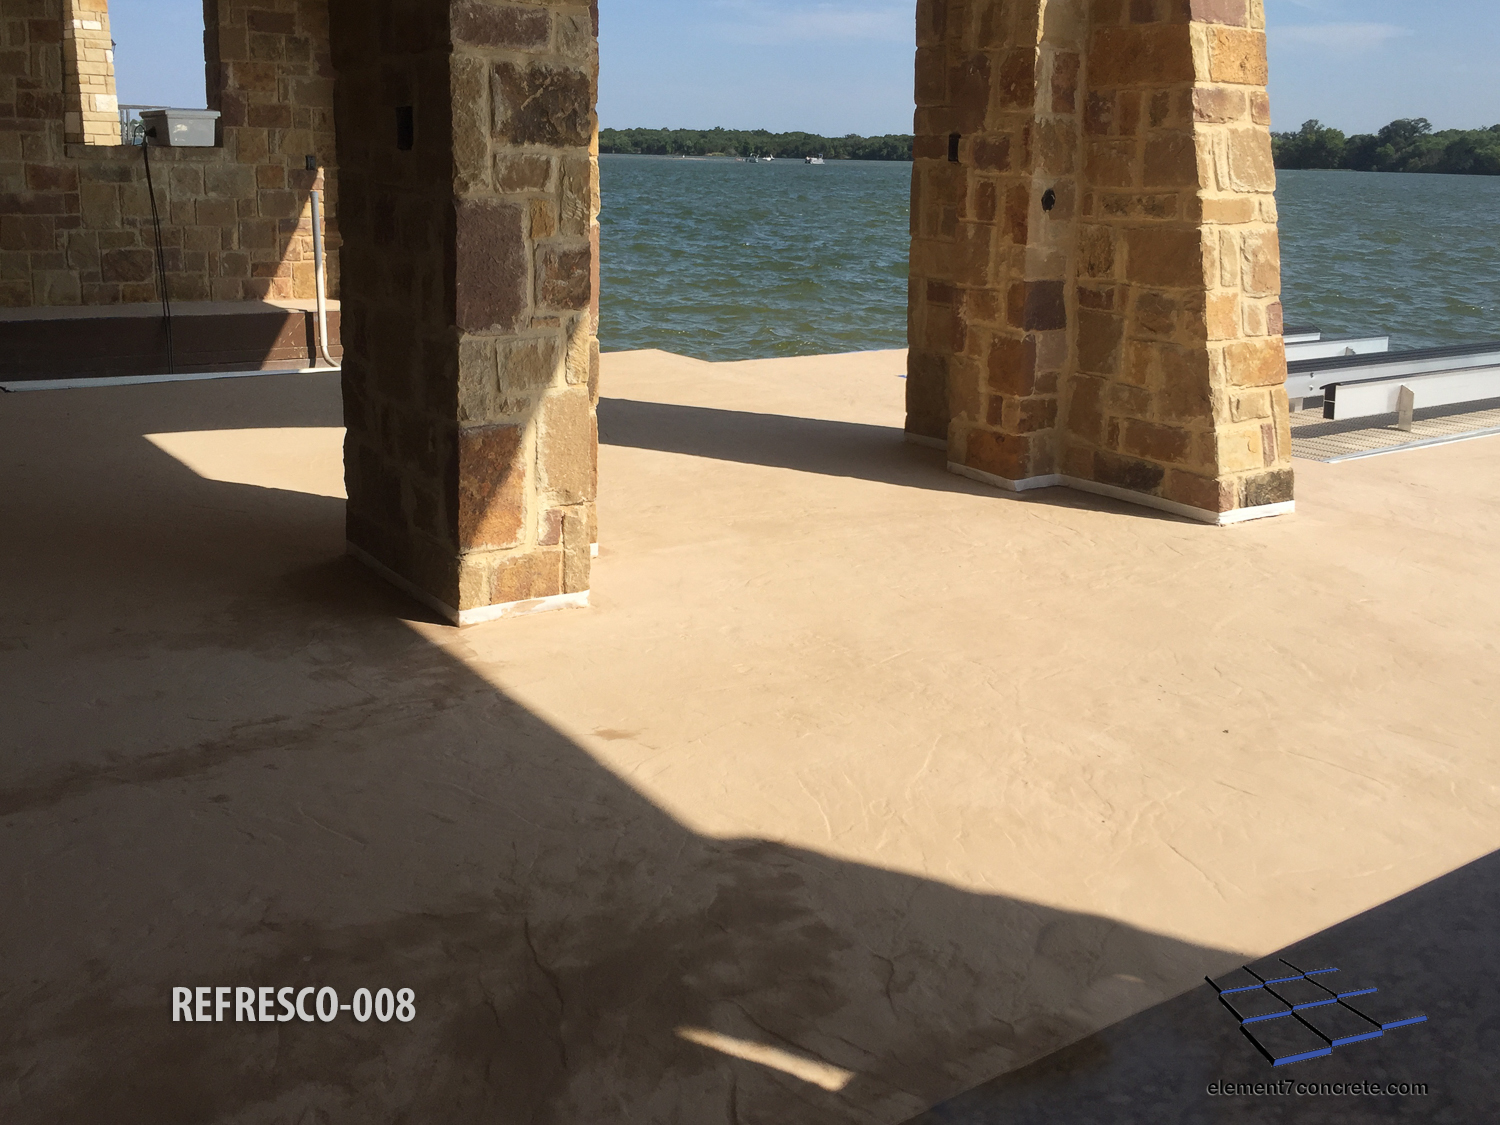 Lakefront Getaway - This is lakefront getaway flooded, and the overlay we installed four years ago took some abuse. We made it better than ever by installing ReFresco and staining it with Colina Tan Permatique.